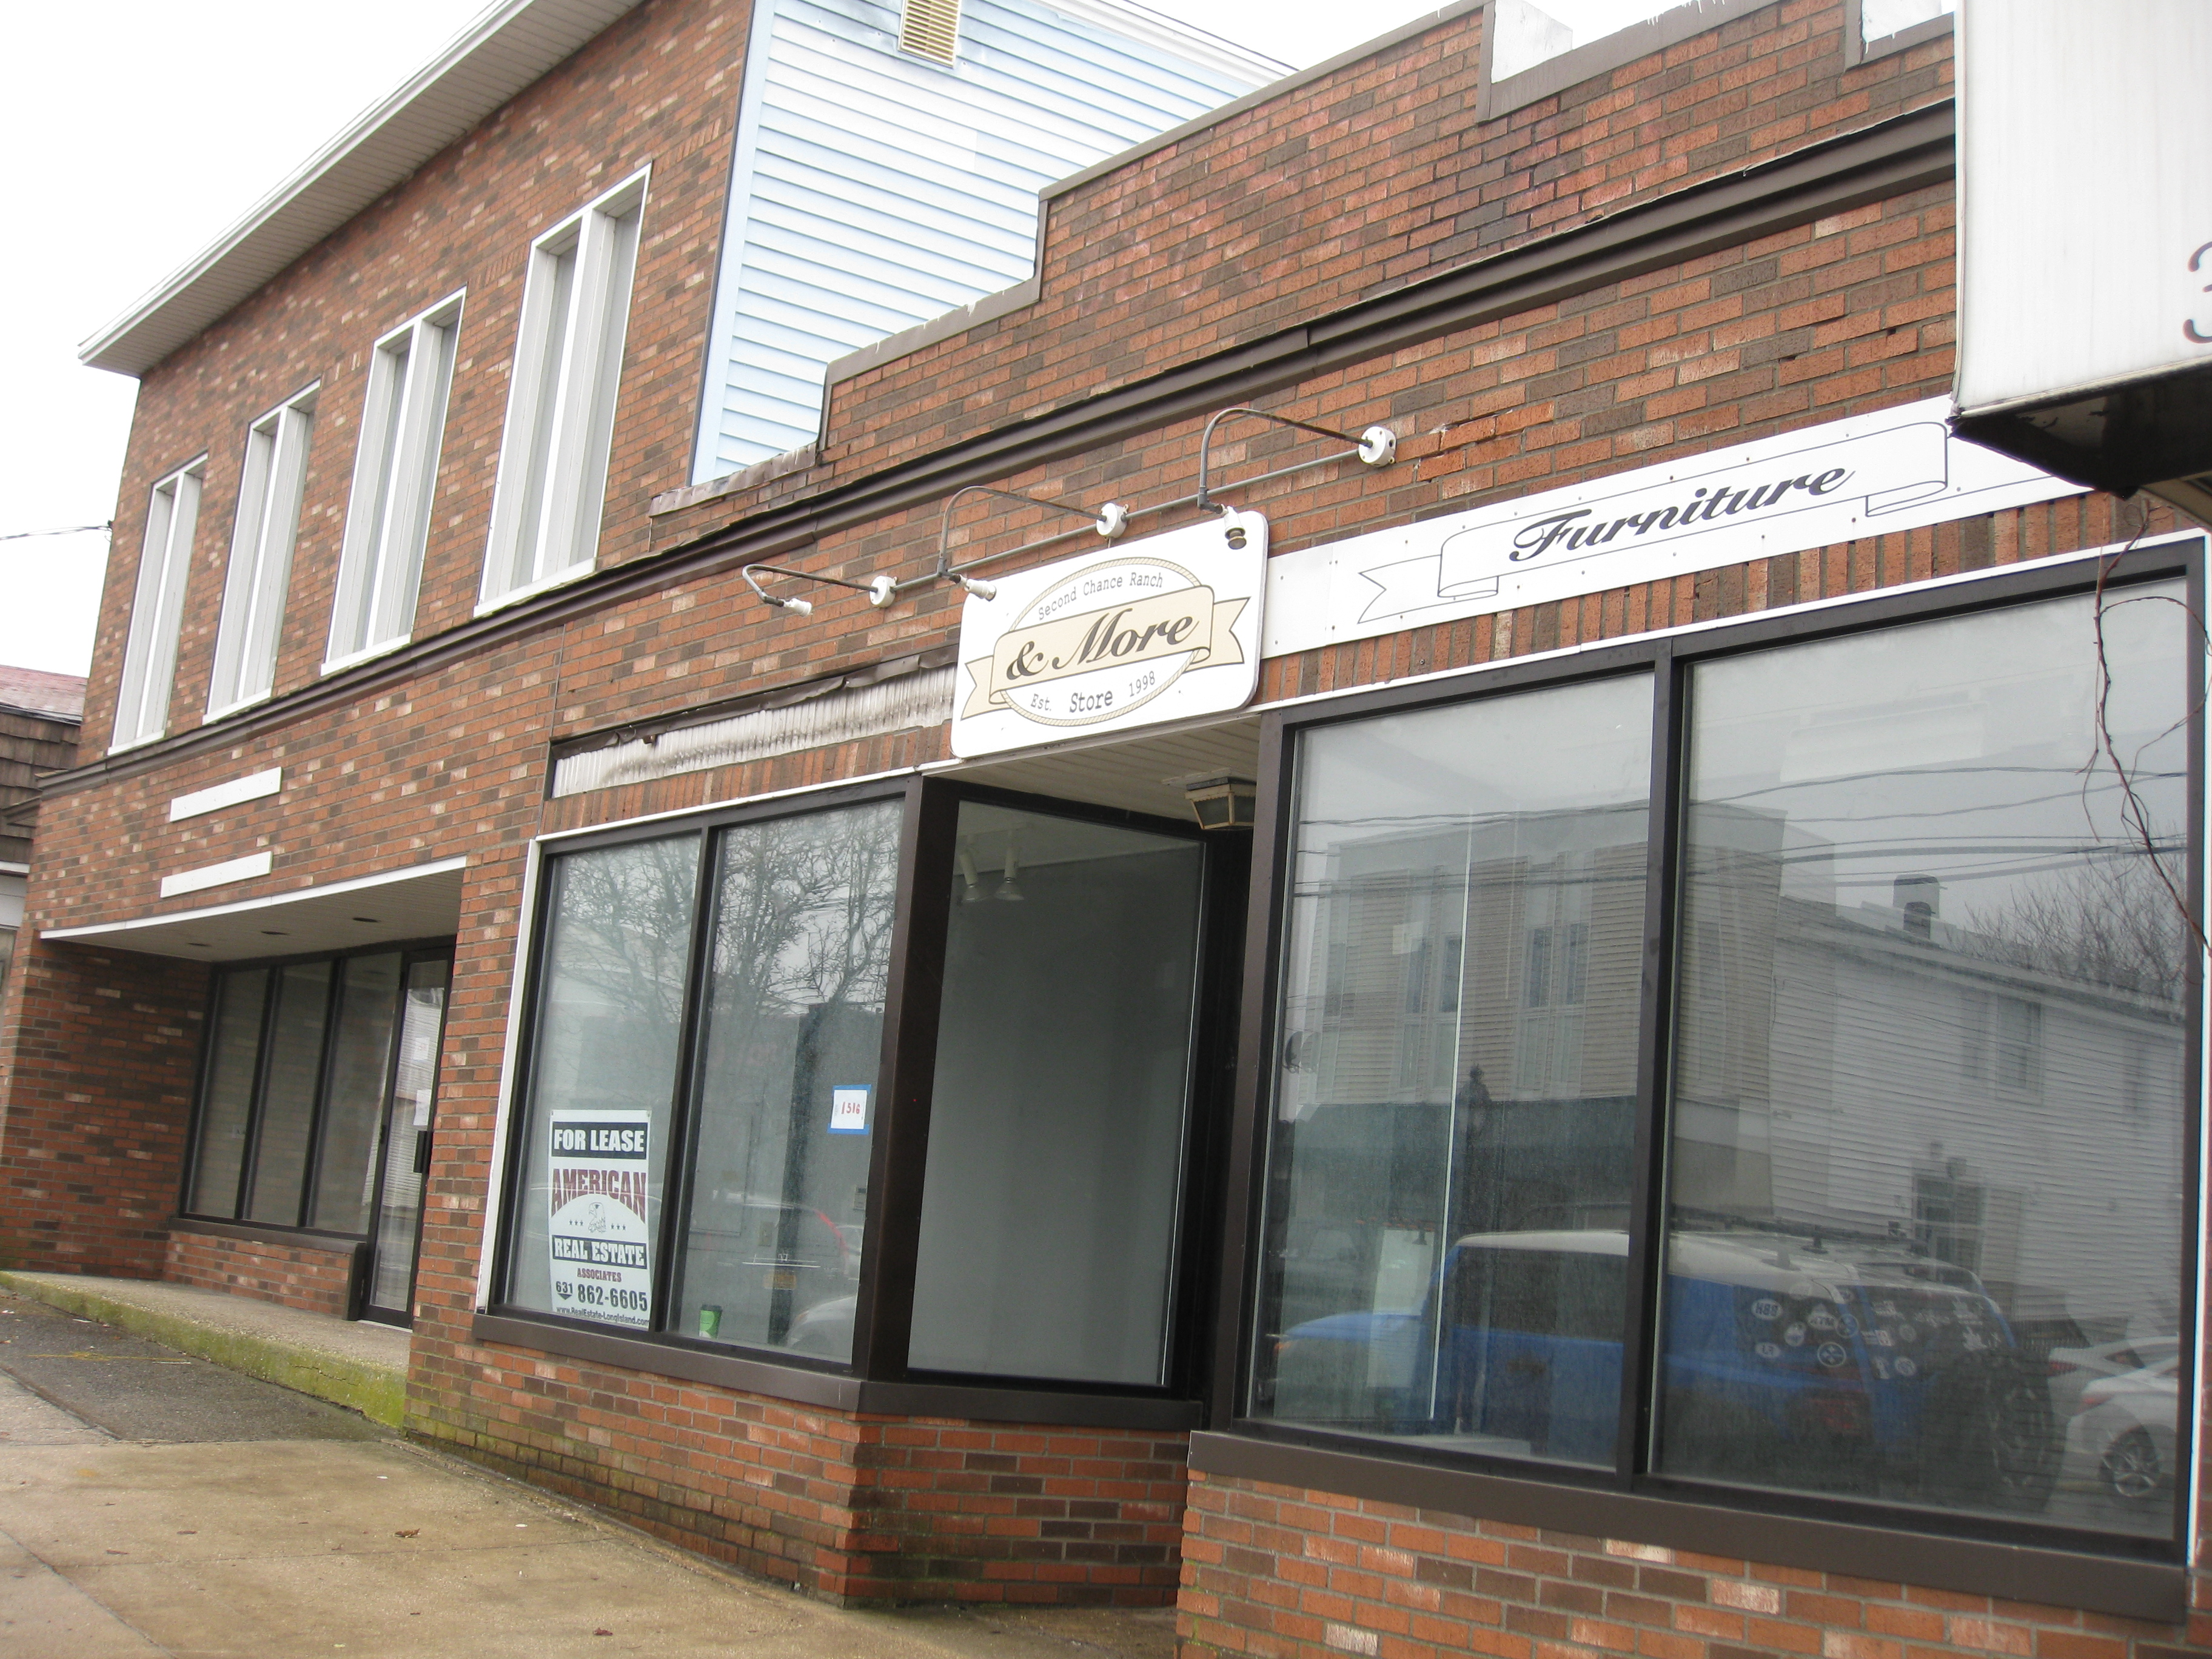 Be Part Of The Modernization Of Upper Port Jefferson With This Property Located In the Middle Of All The Action!! Two Existing Storefronts, A Second Floor Office, Two Apartments And A Separate Two Bedroom Cottage On A 12,196 Square Foot Parcel.